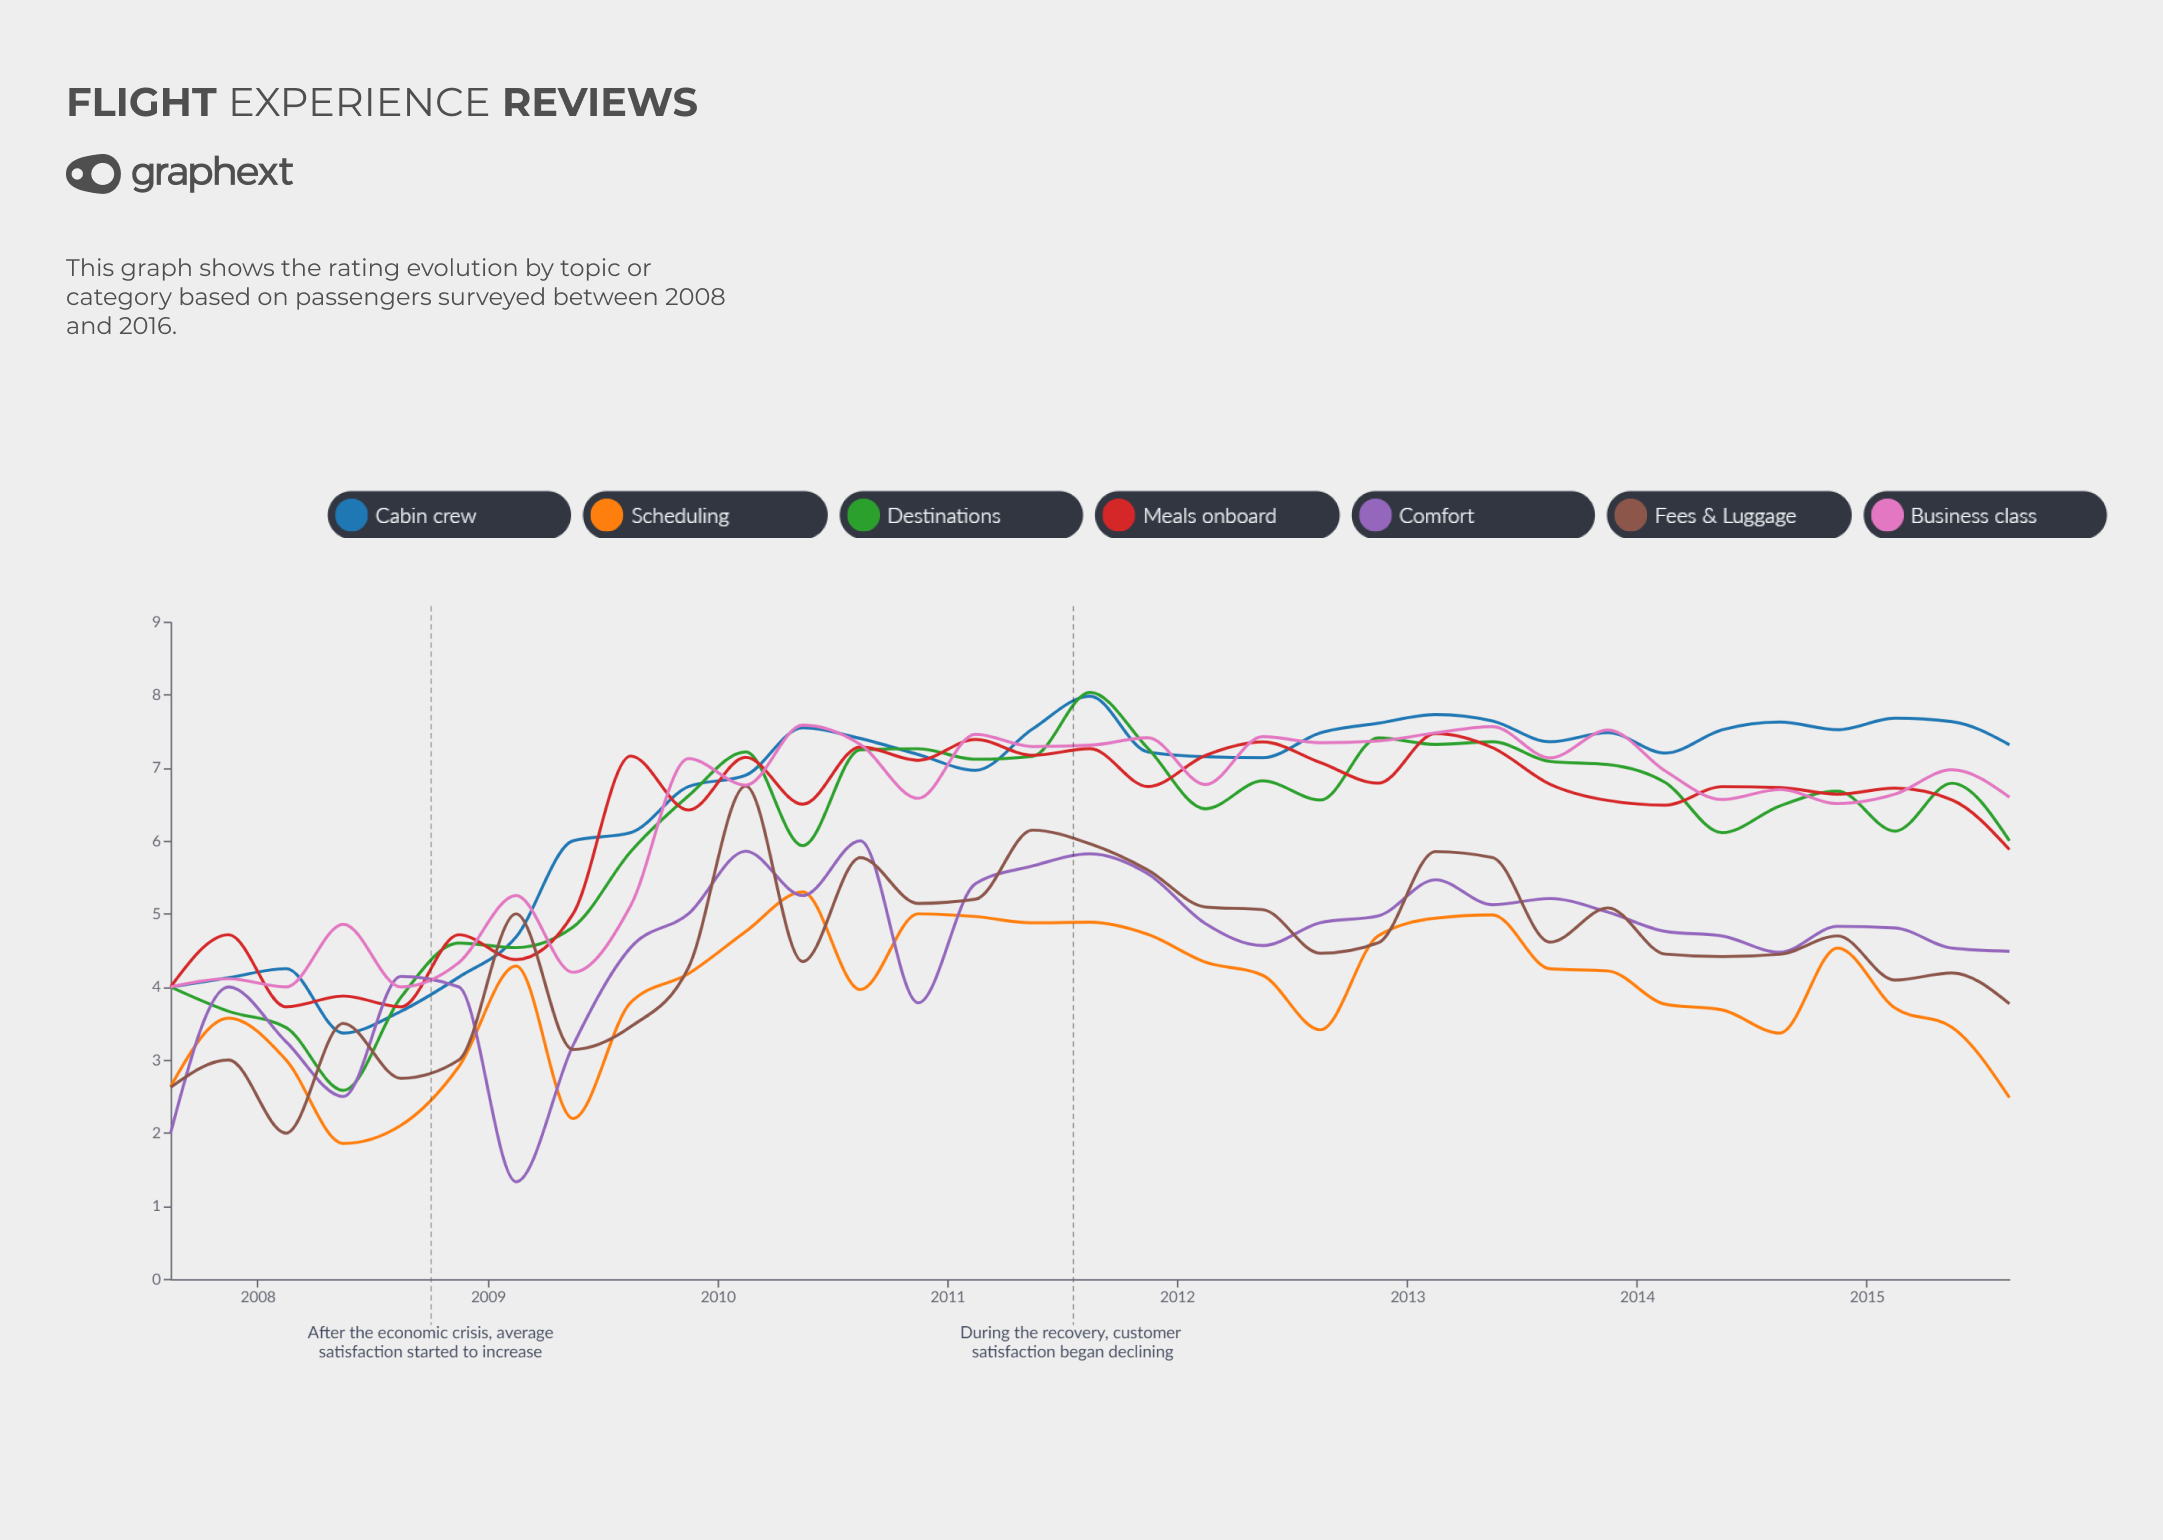 A time-series chart showing how ratings of different airline review topics (food - customer service - luggage) evolved between 2008 and 2016.